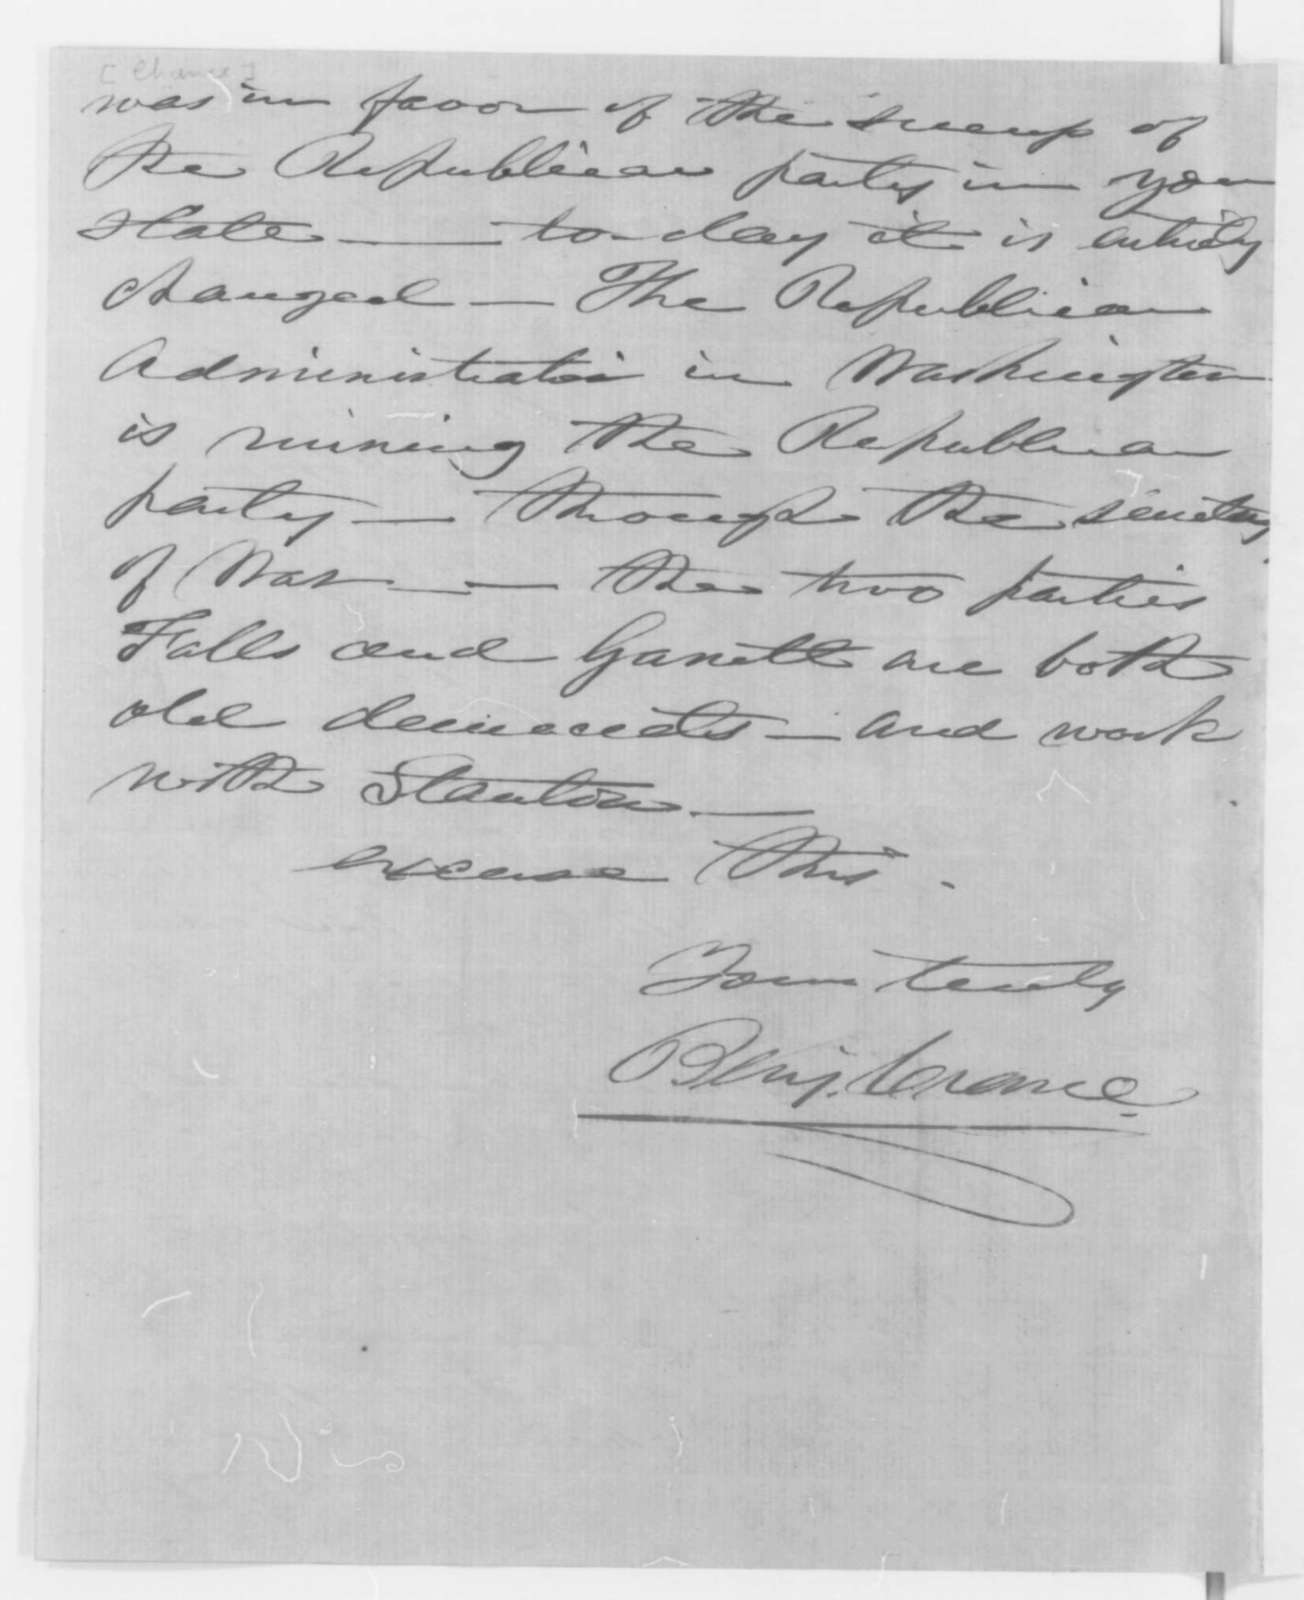 Benjamin Crence to Elliot C. Cowdin, Wednesday, October 29, 1862  (Conduct of General Wool)